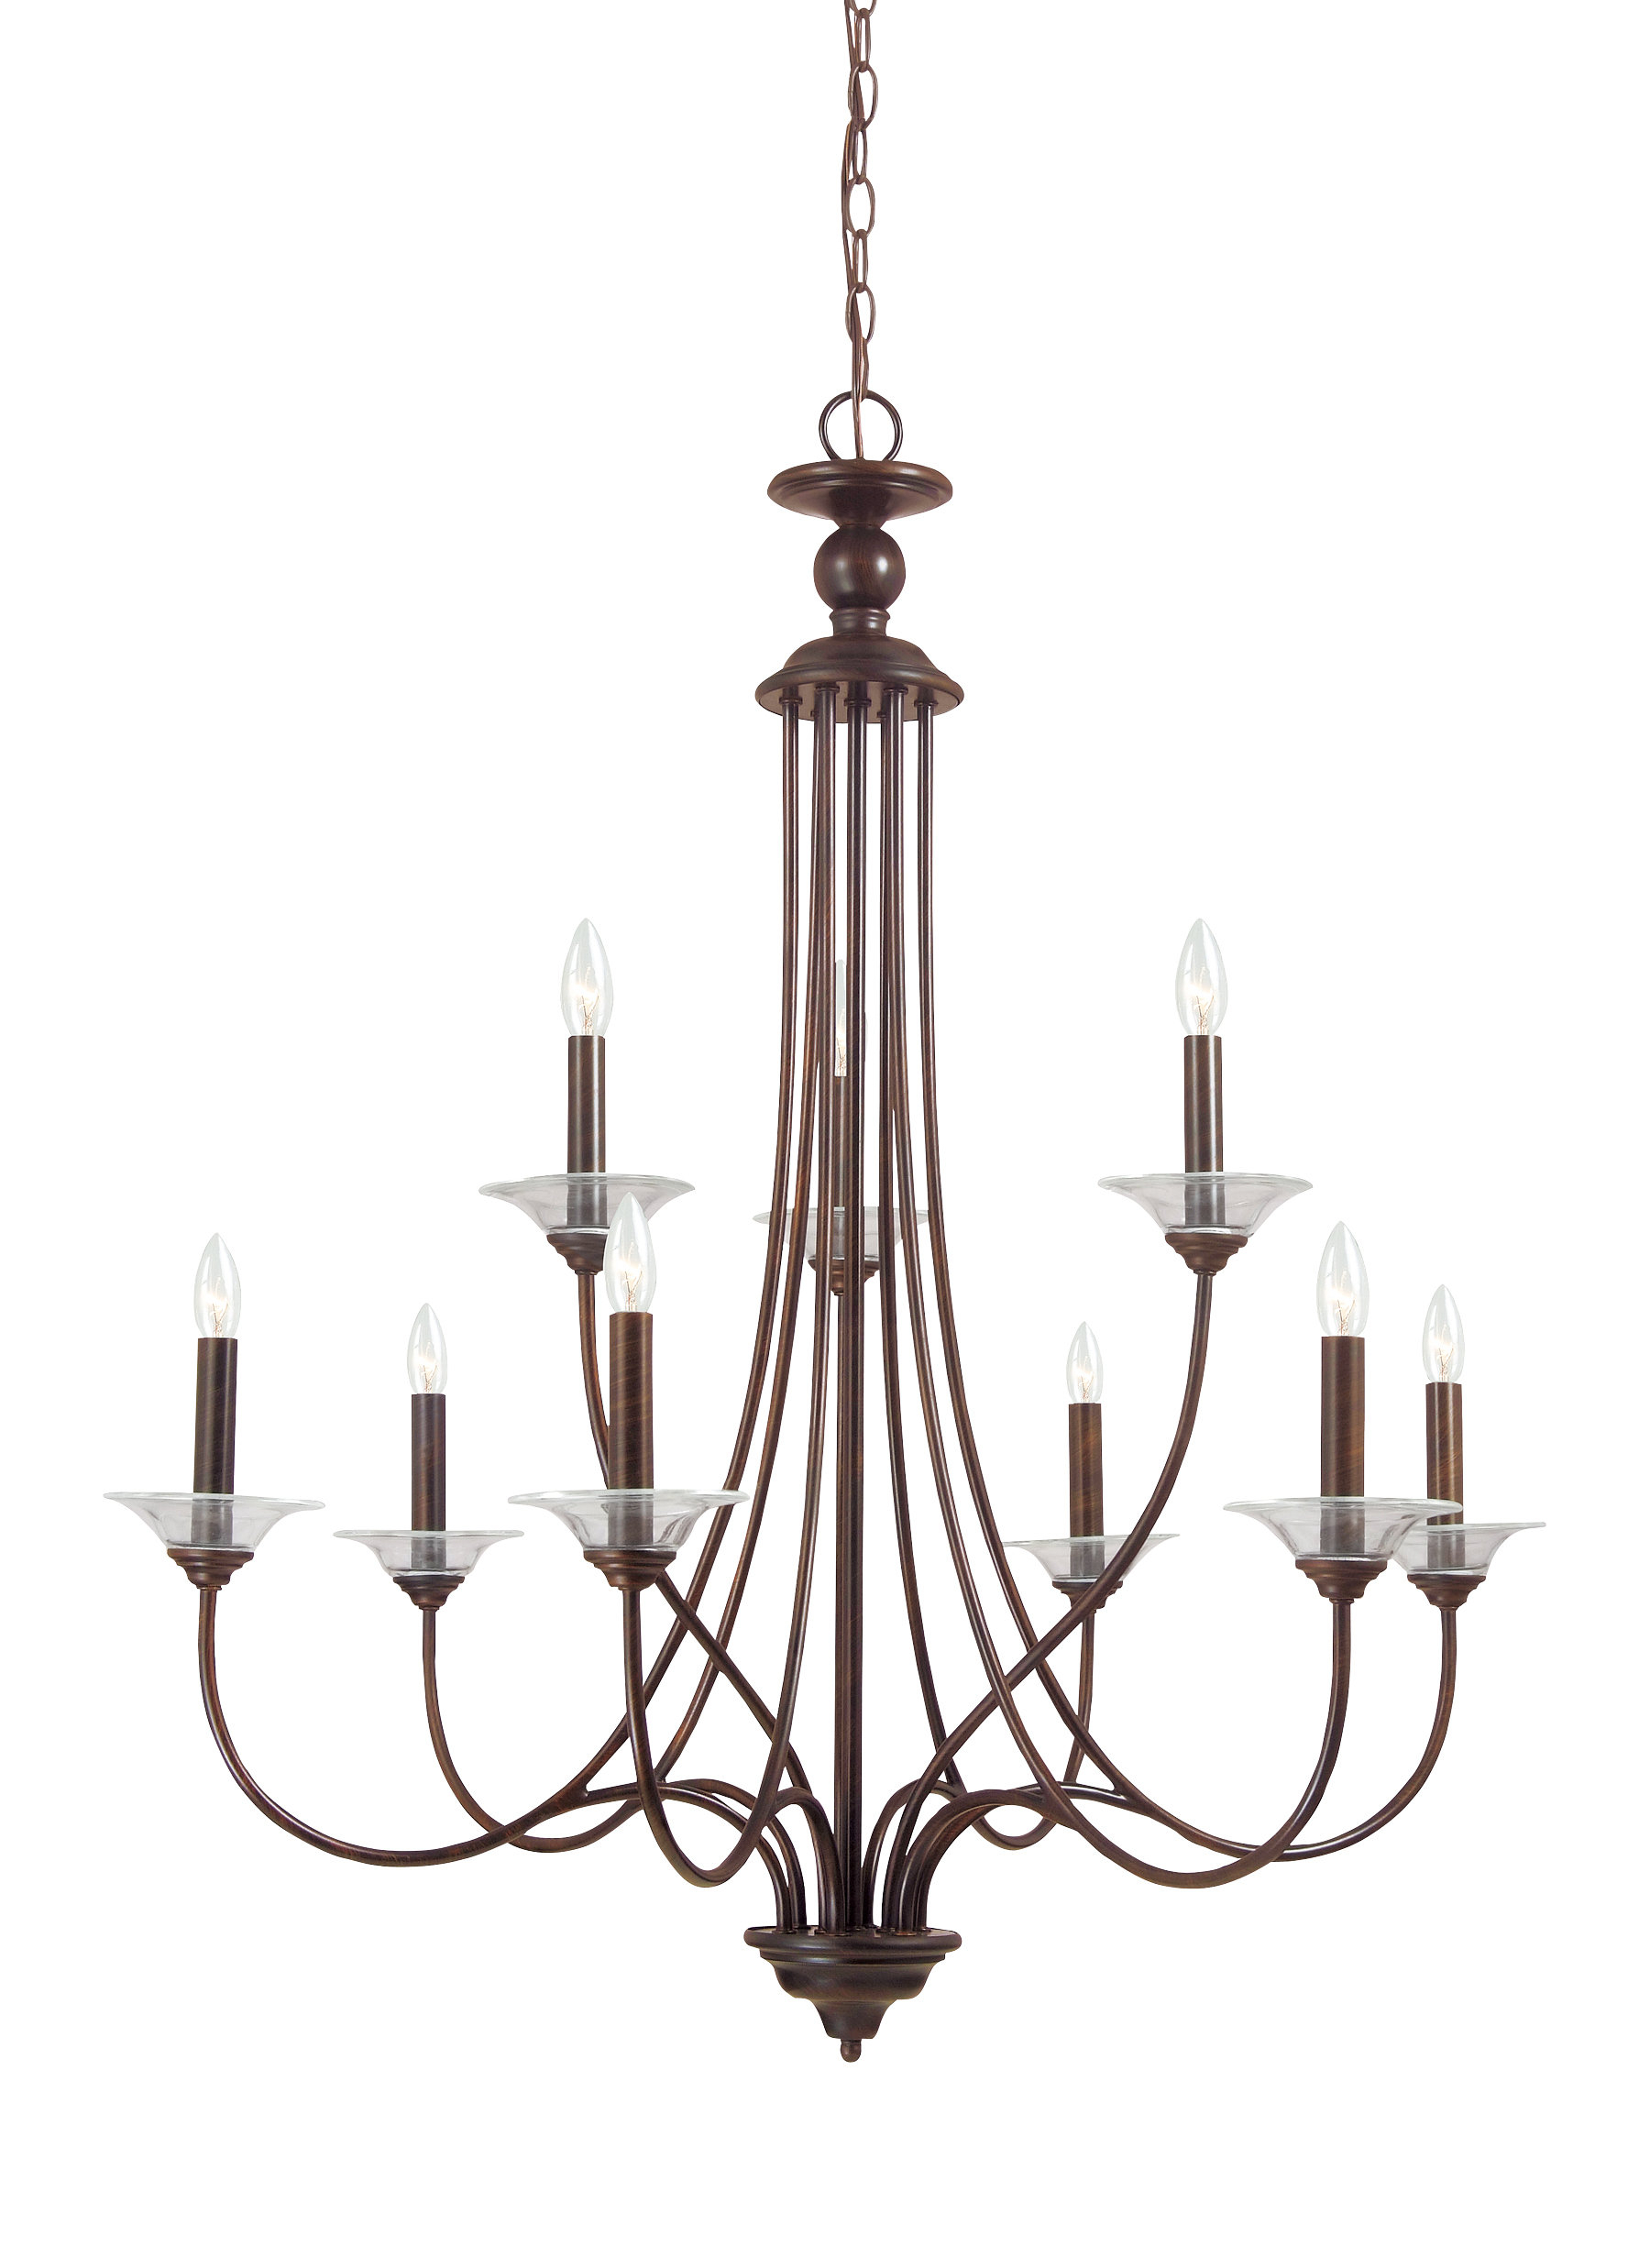 2019 Barbro 9 Light Chandelier Throughout Watford 9 Light Candle Style Chandeliers (Gallery 20 of 20)